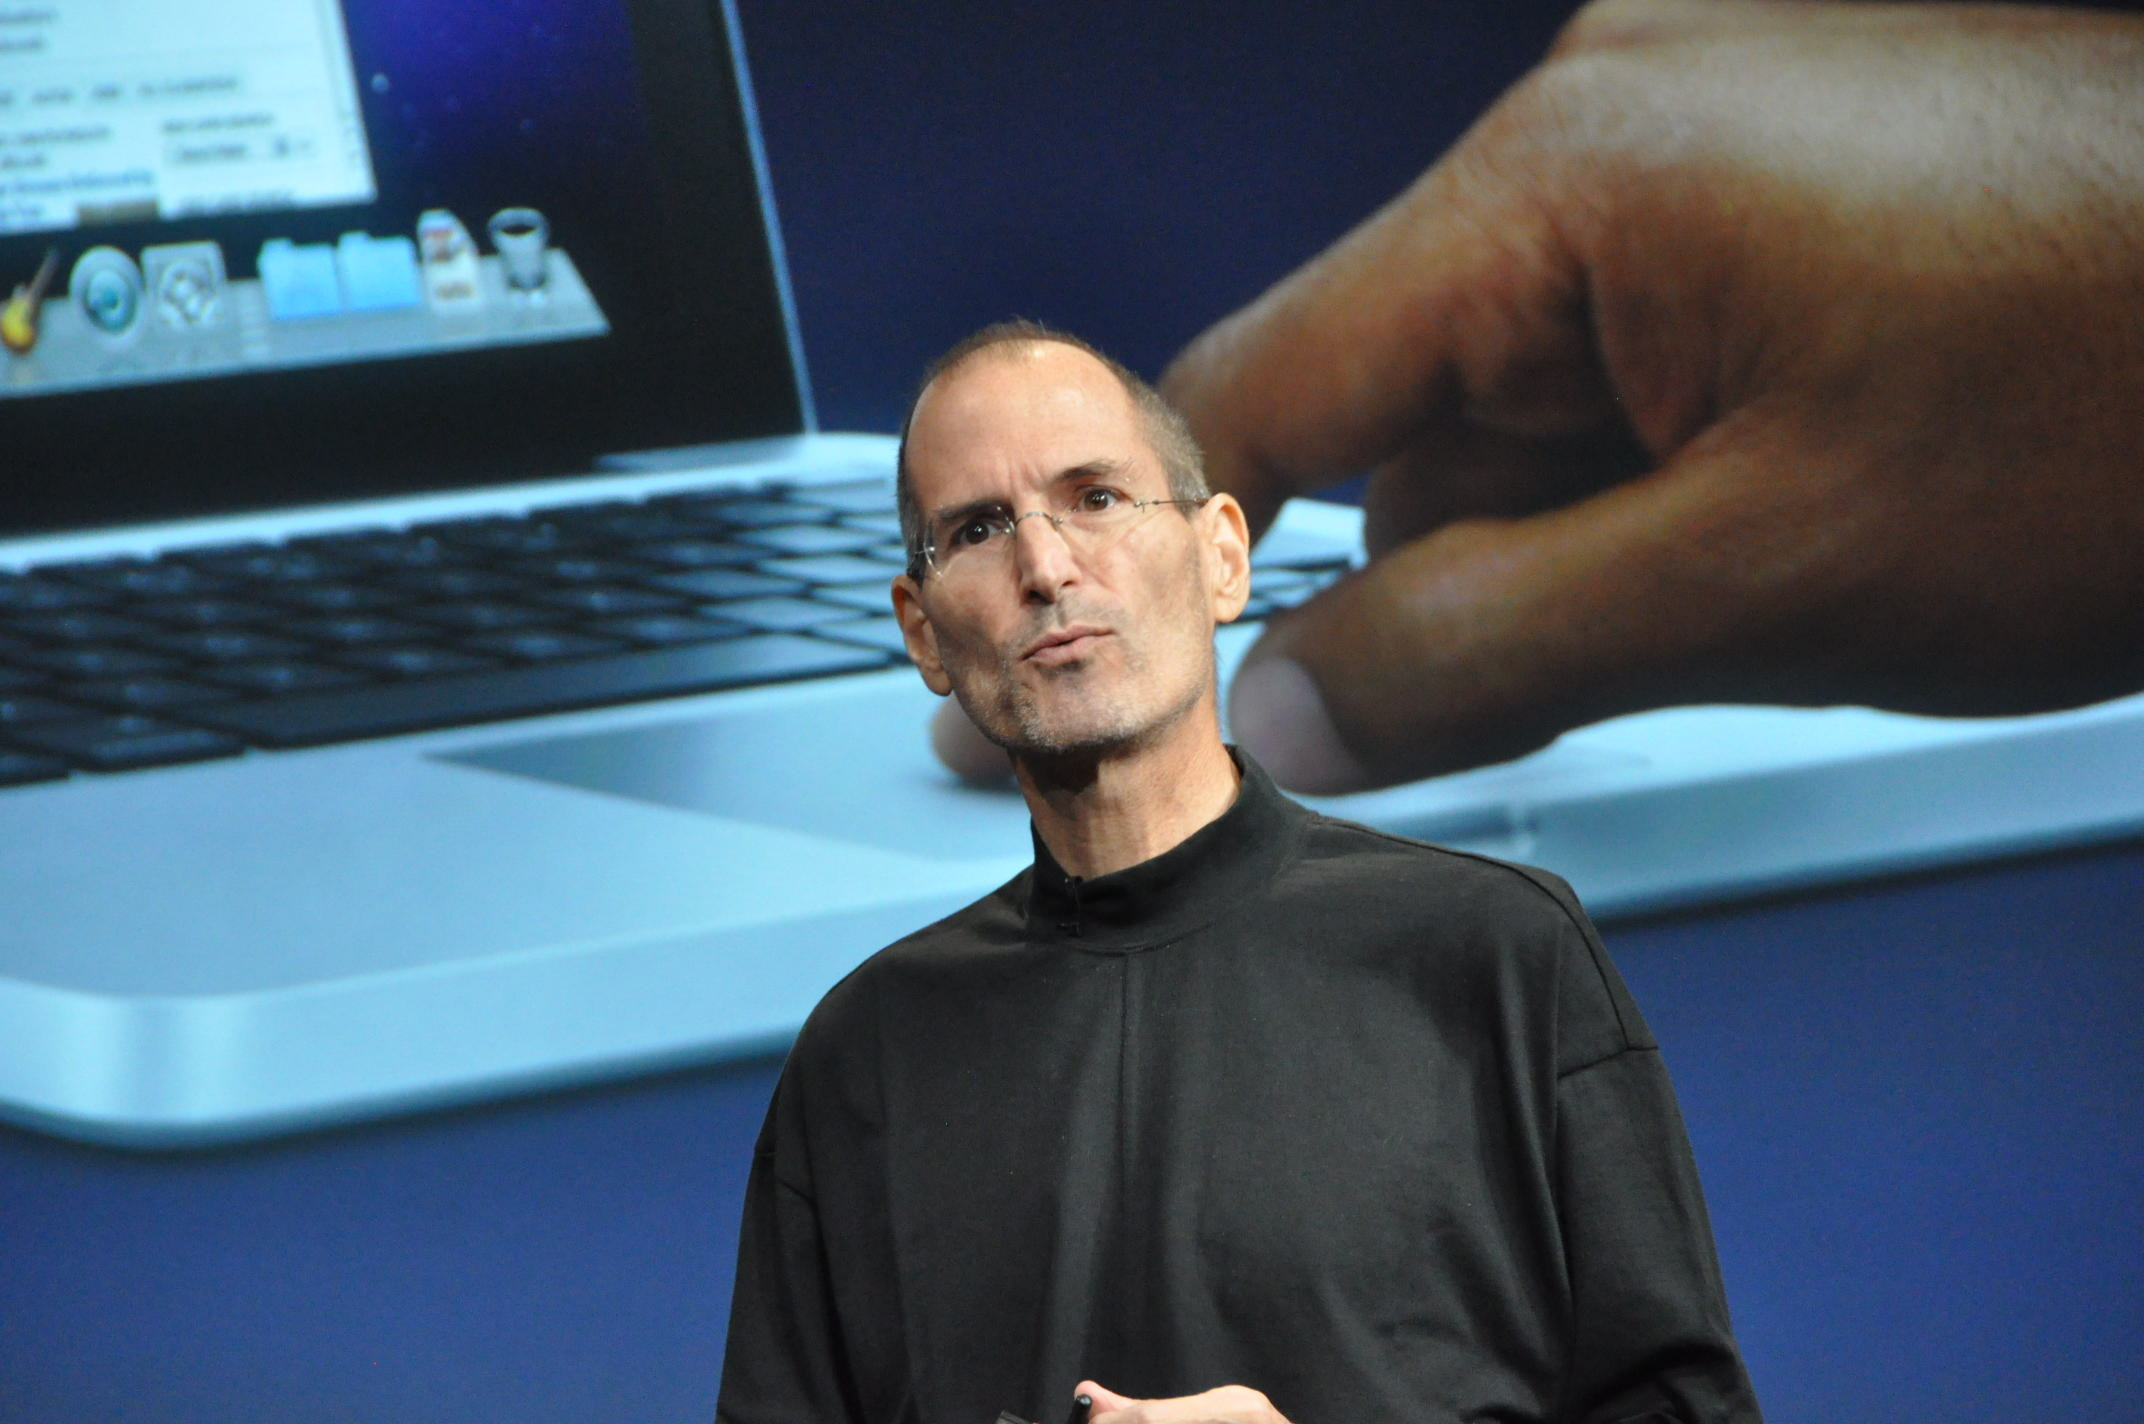 Steve Jobs on multitouch